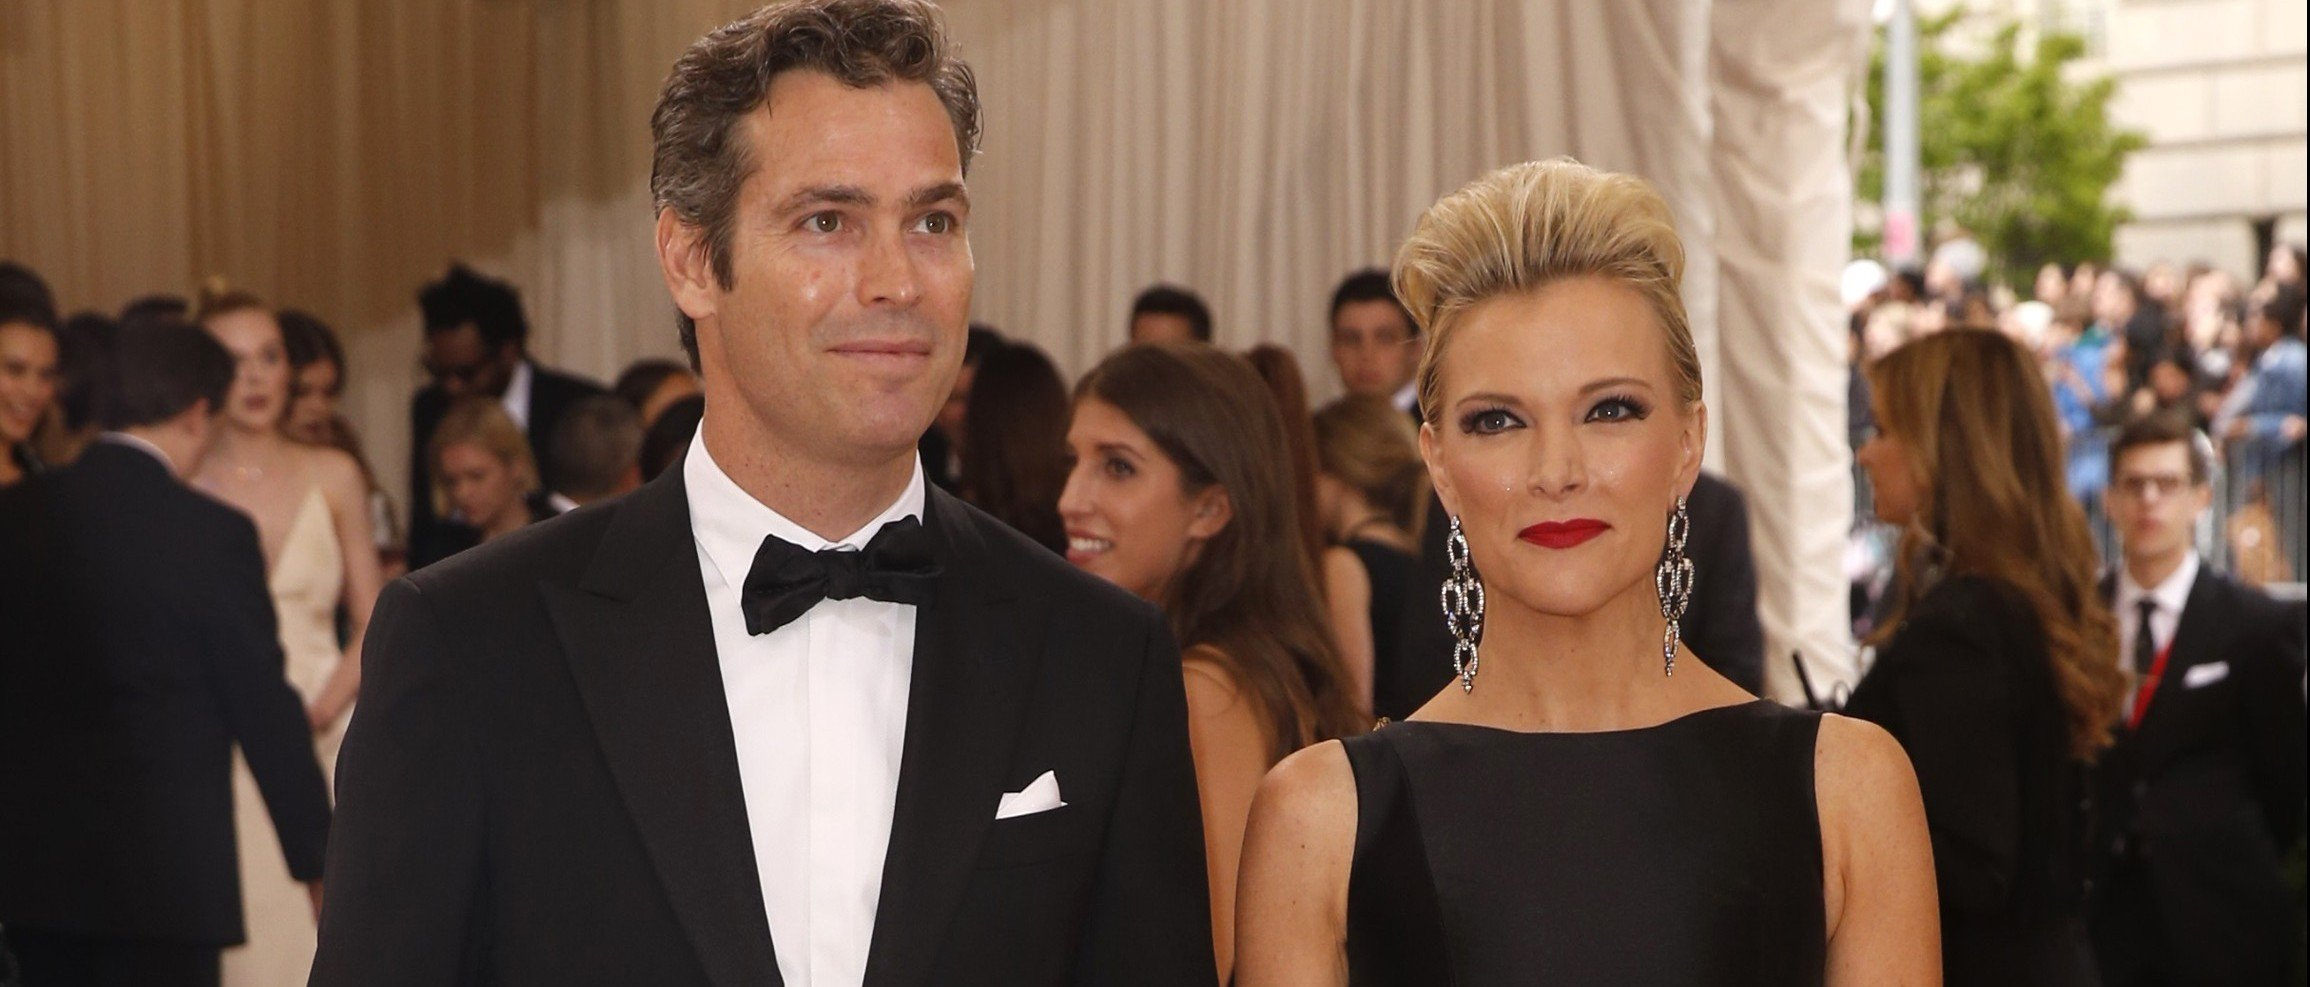 "Journalist Megyn Kelly and husband Douglas Brunt arrive at the Metropolitan Museum of Art Costume Institute Gala (Met Gala) to celebrate the opening of ""Manus x Machina: Fashion in an Age of Technology"" in the Manhattan borough of New York, May 2, 2016. photo:REUTERS/Lucas Jackson)"